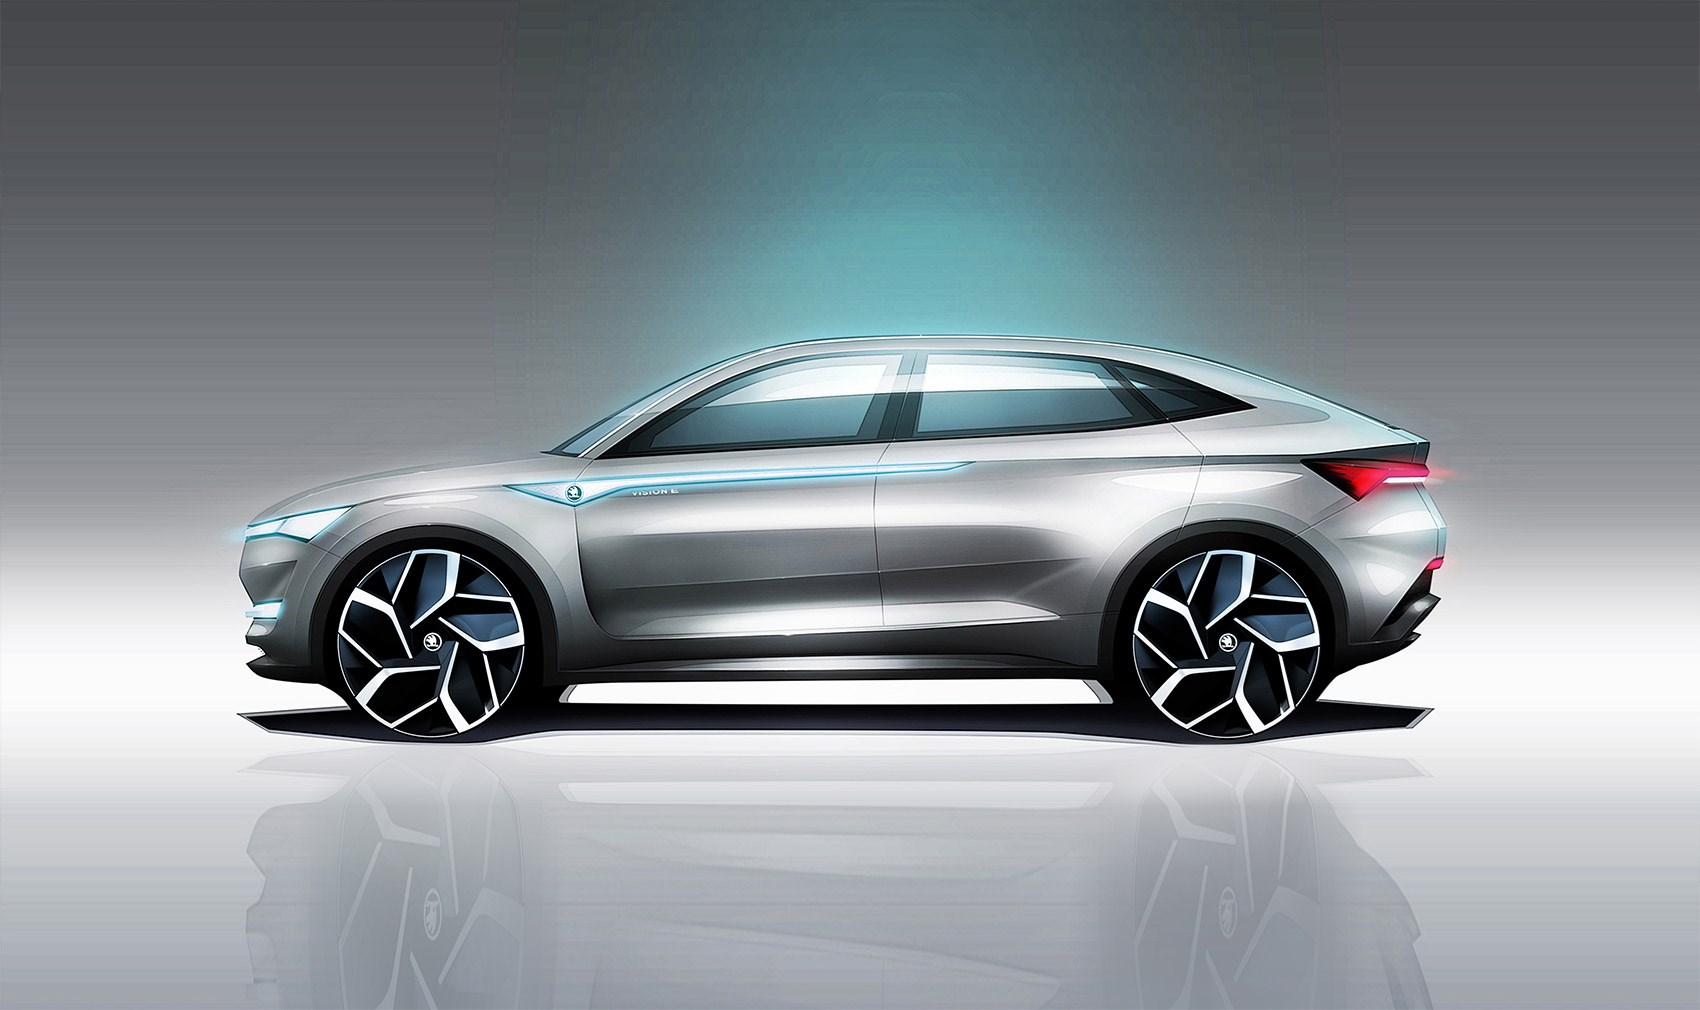 Shanghai Motor Show Preview AZ Of All The New Cars By CAR - The new cars